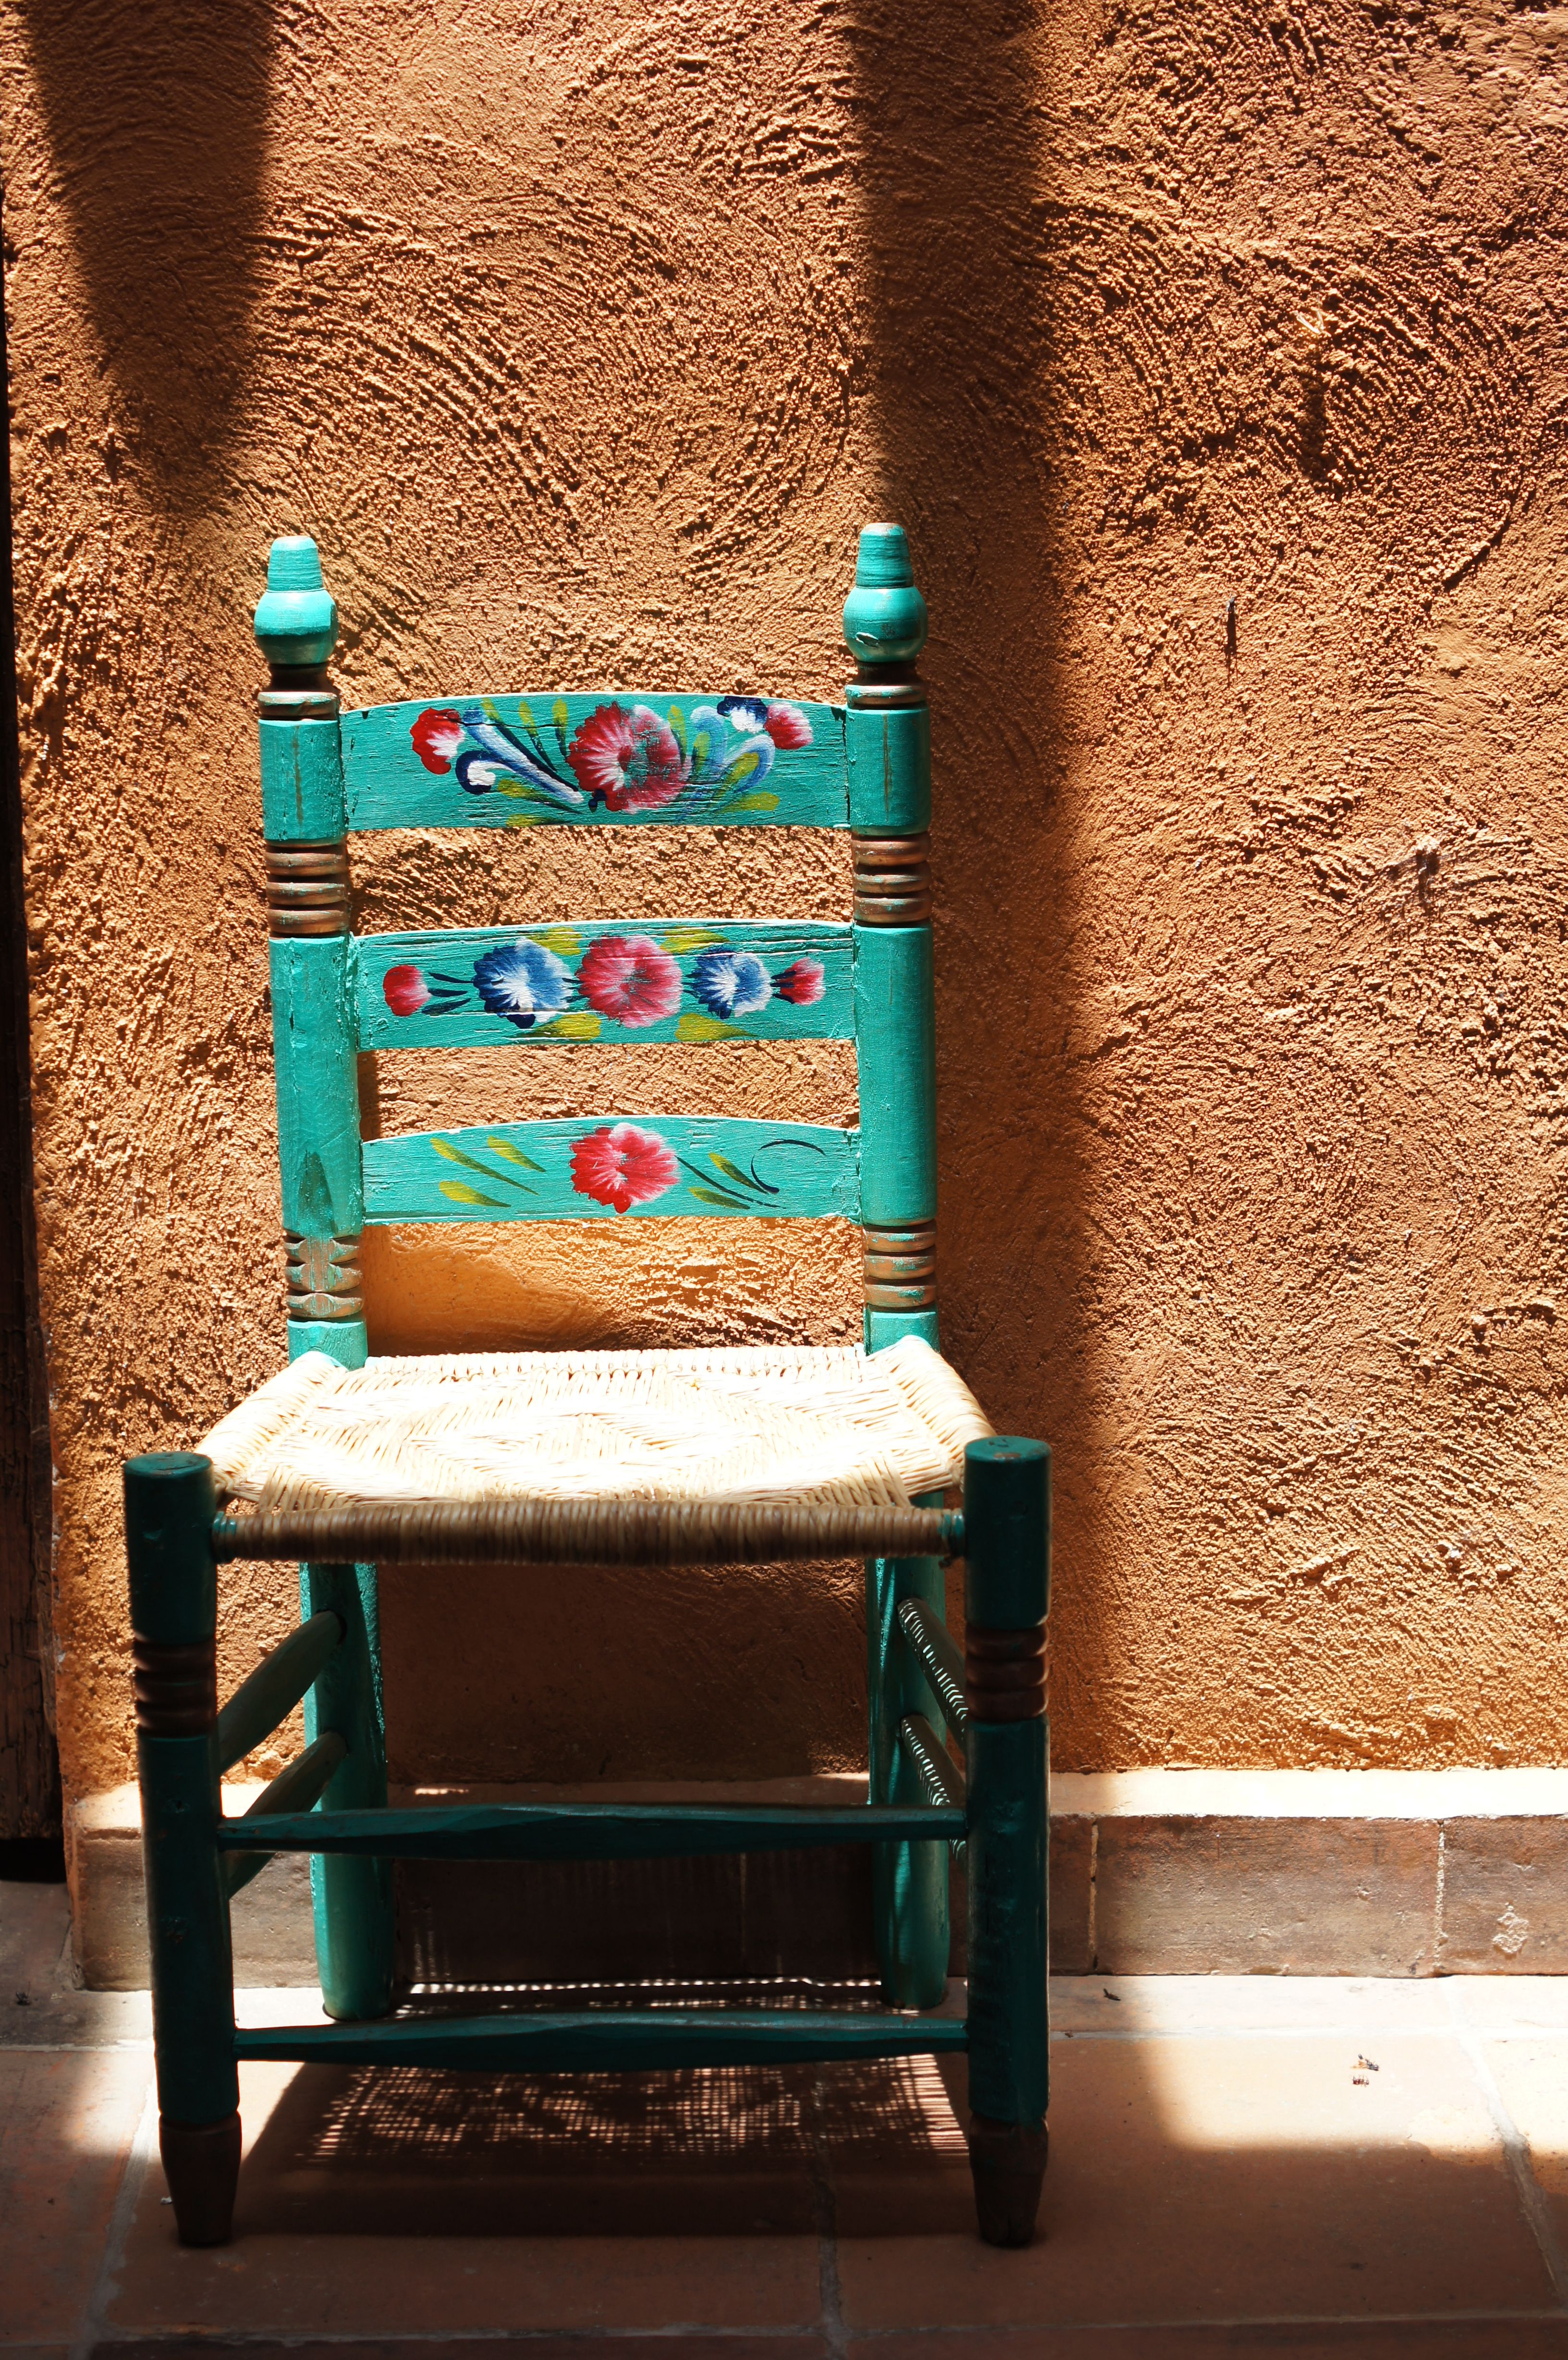 Viva Mexico Chair Sillita Al Sol Mexico Mexican Decor Pinterest